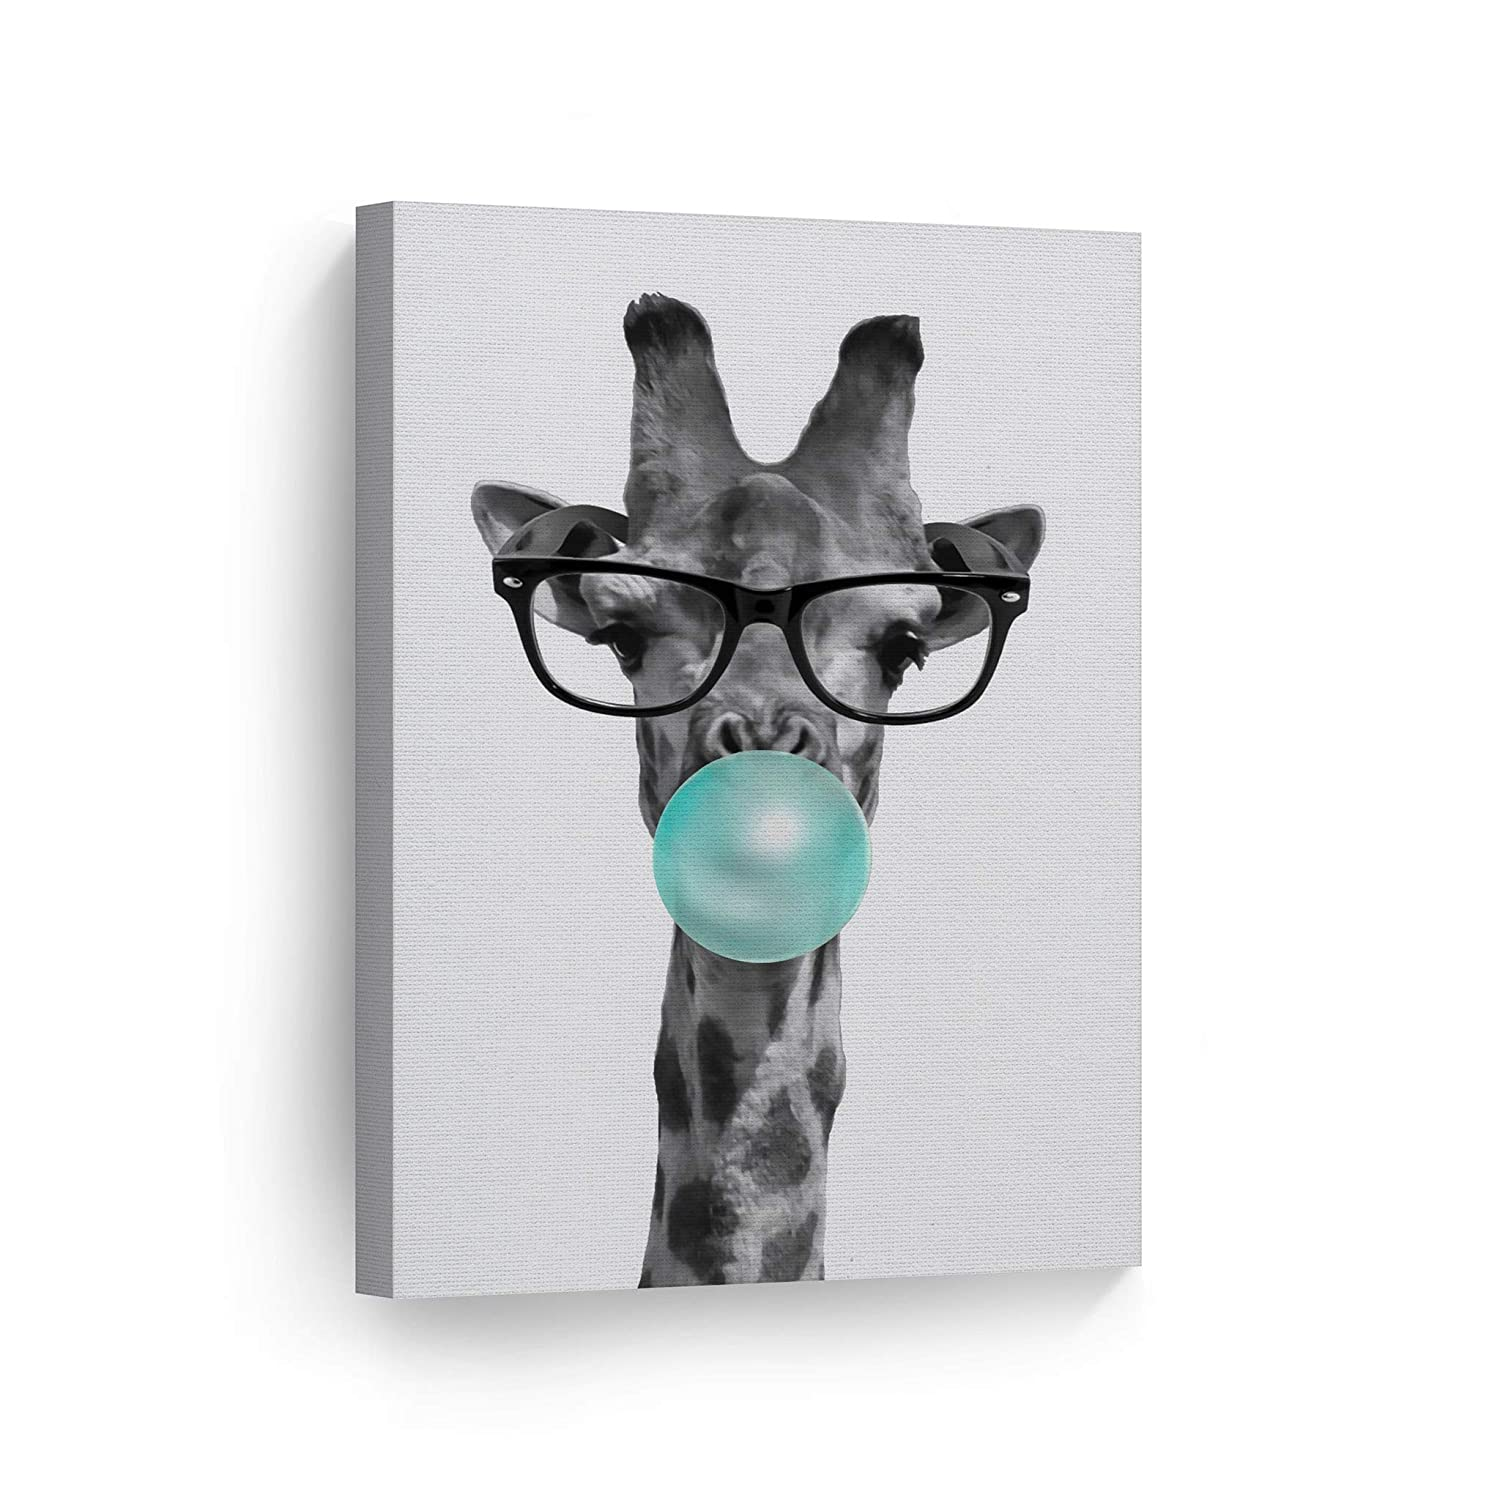 Cute Giraffe with Glasses Animal Decor Bubble Gum Art Teal Blue Canvas Print Black and White Wall Art Home Decor Nursery Room Decor Stretched Ready to Hang- Handmade in USA - 12x8